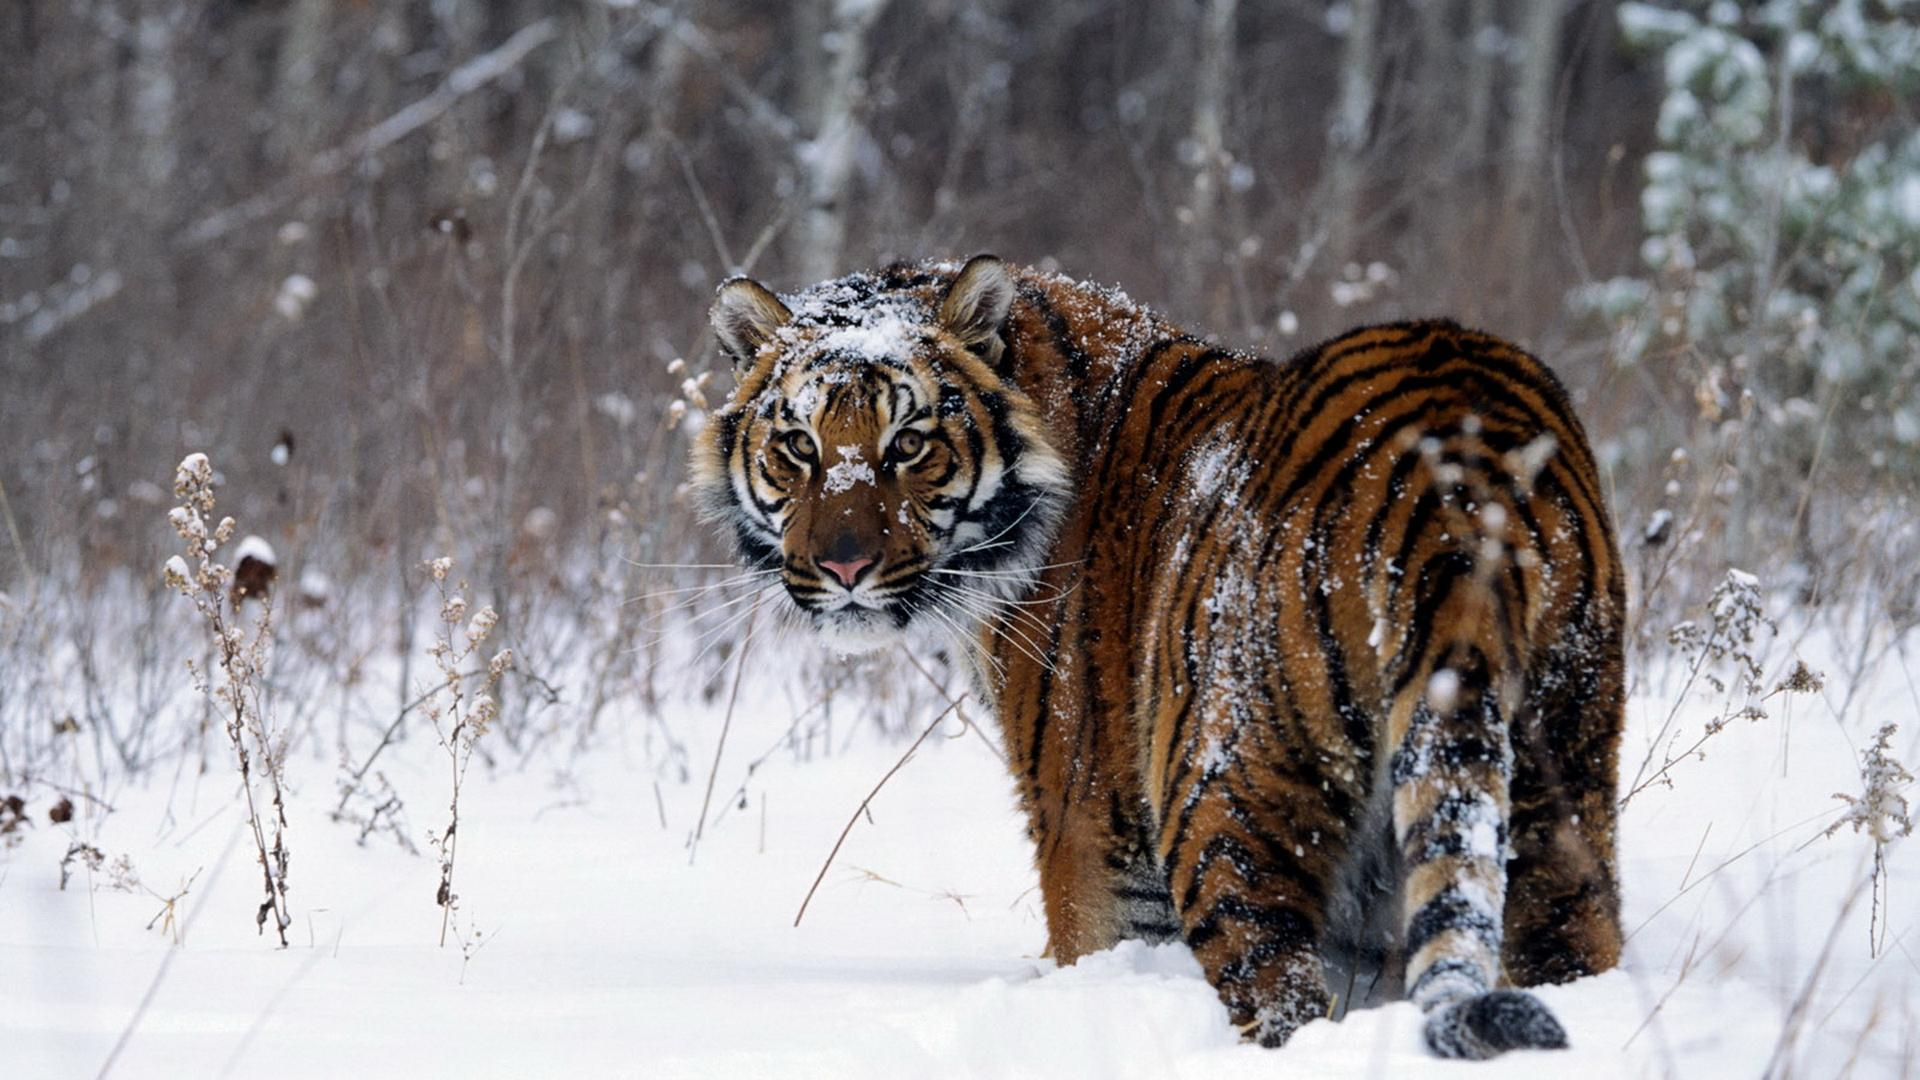 Animals Tiger Snow Wallpapers Hd Desktop And Mobile: Snow Tiger Wallpapers